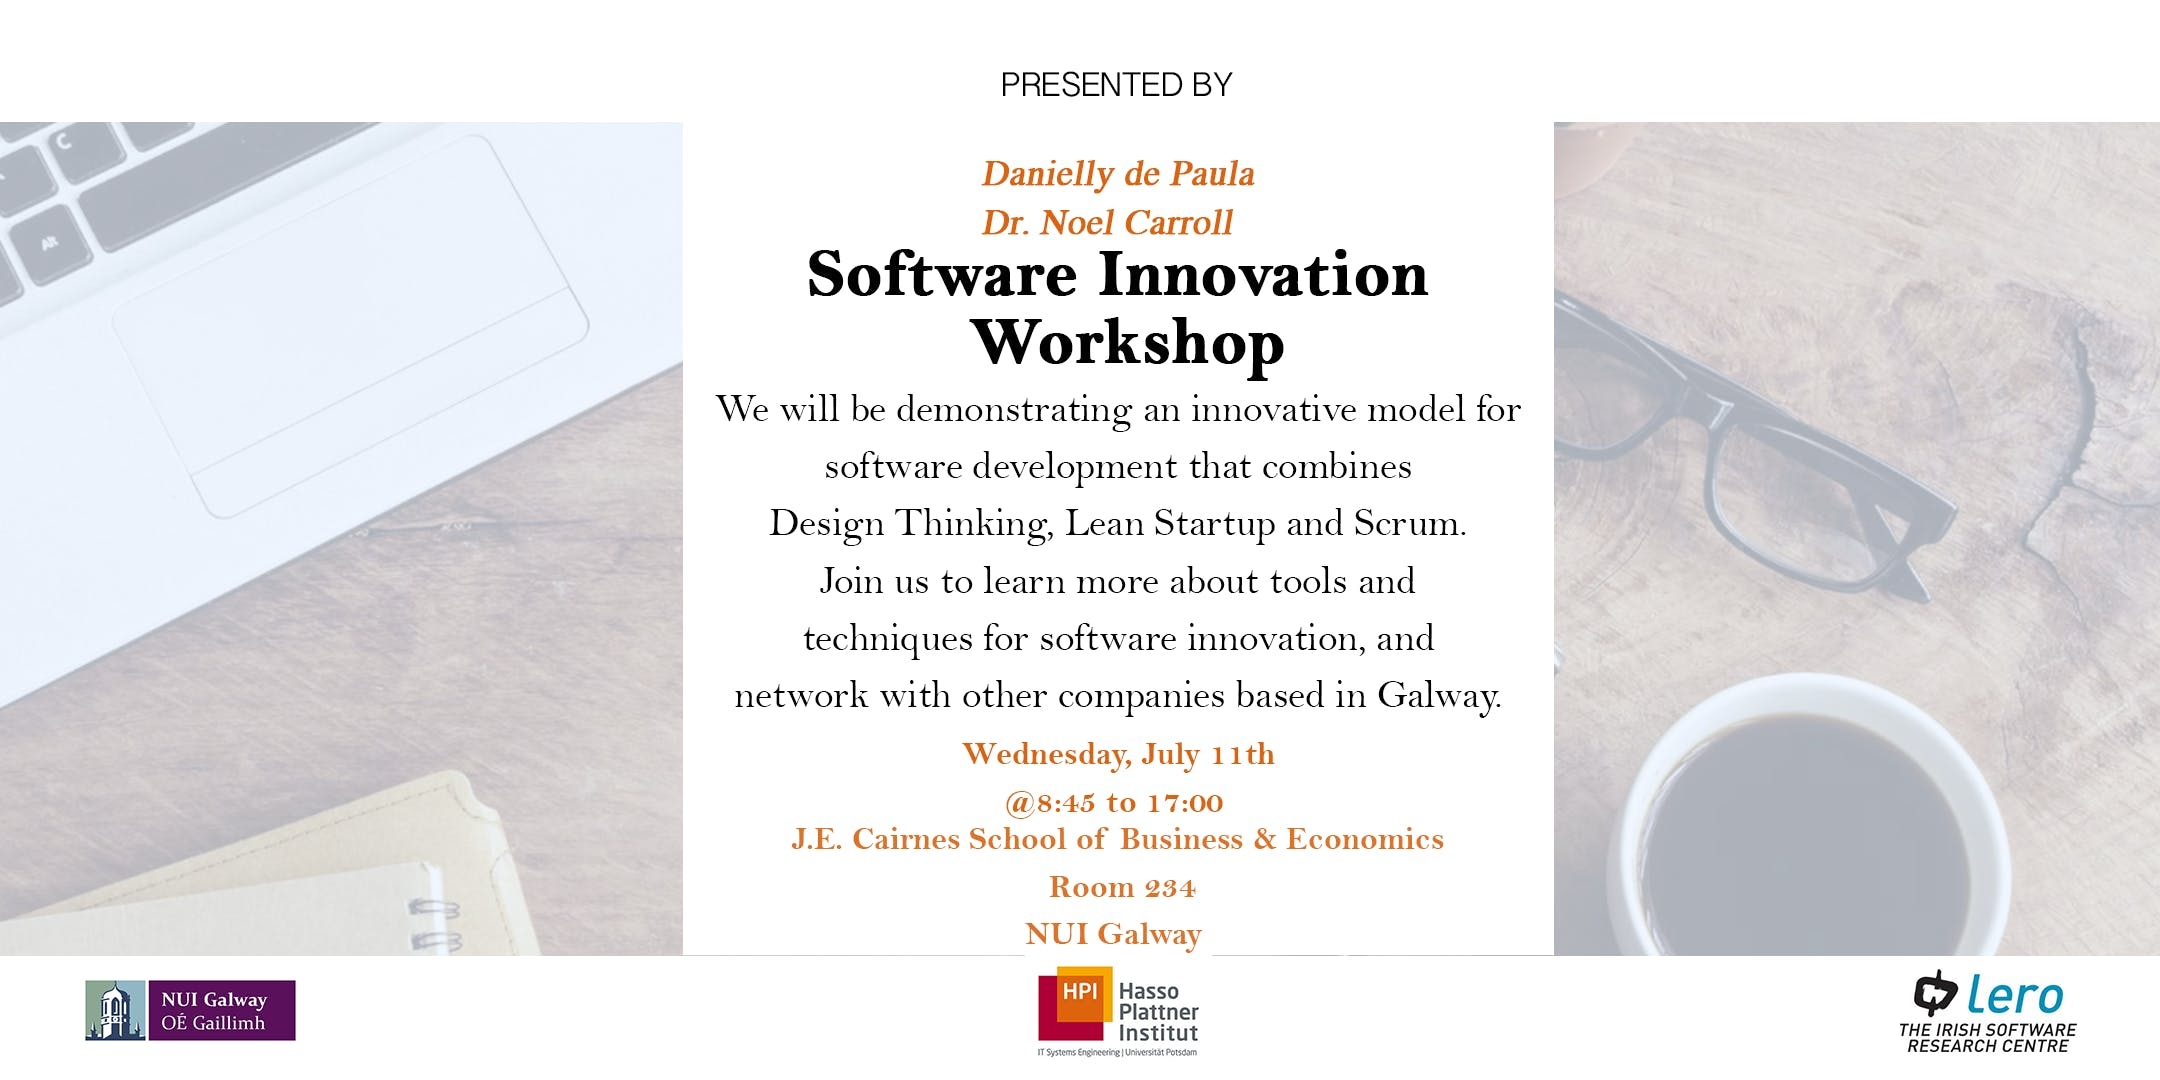 Innodev Driving Excellence In Design Thinking For Software Solutions 11 Jul 2018